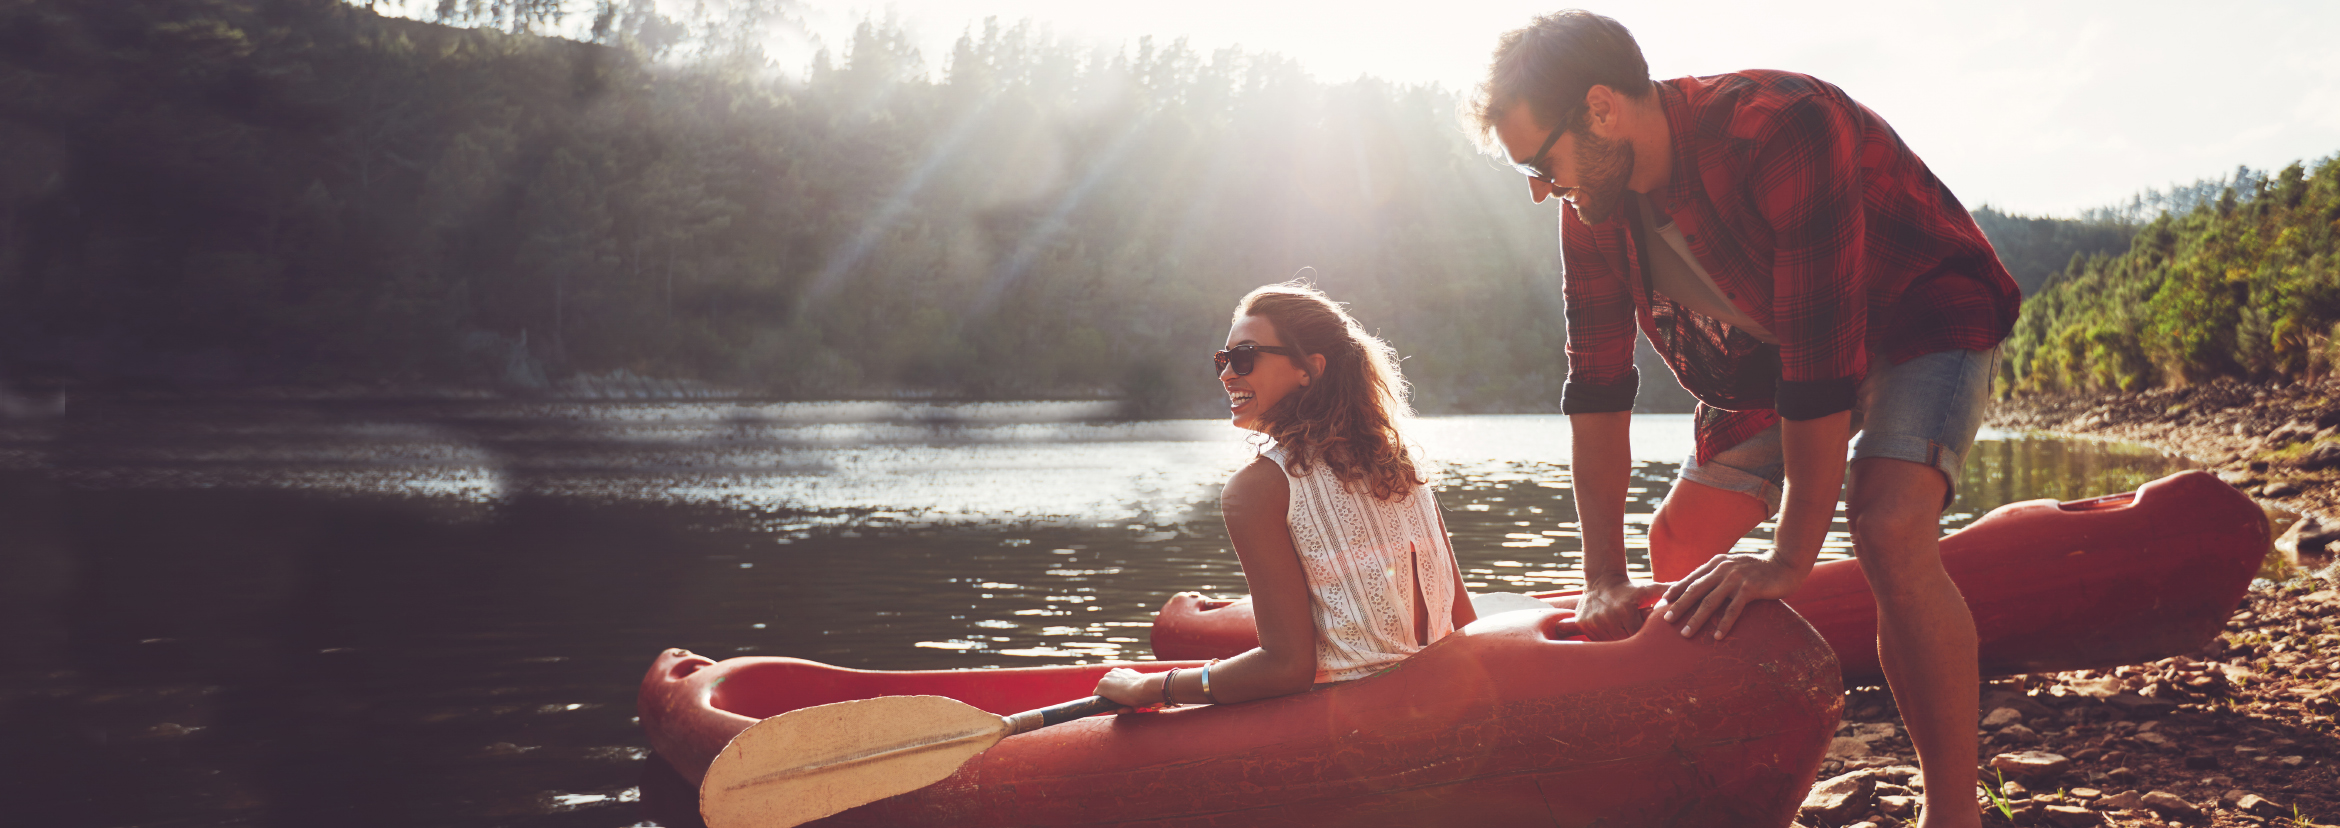 Proven_Insect_Repellent_Effective_Safe_party_couple_outdoors_canoe_holiday_vacation